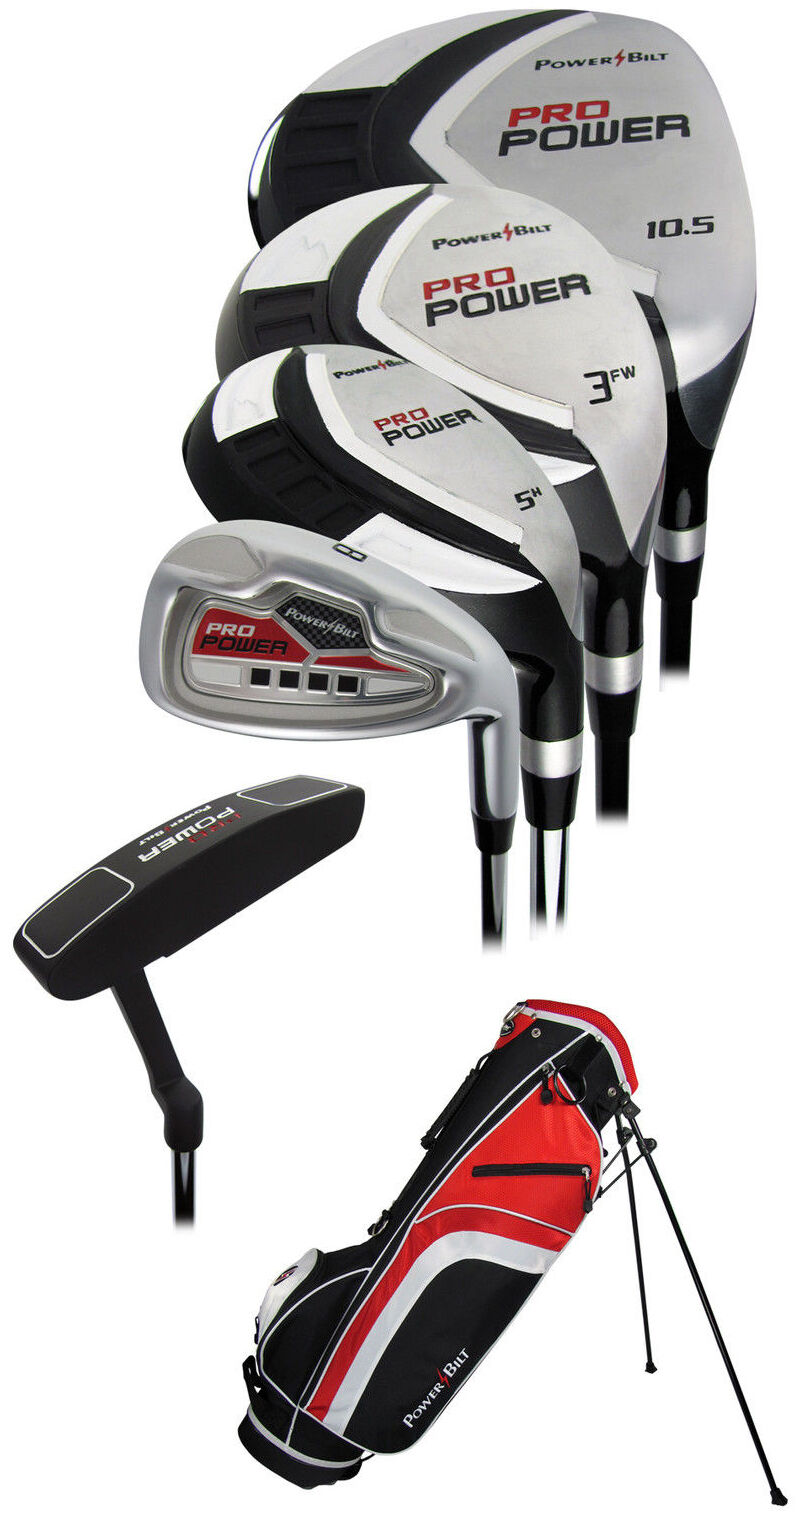 Top 10 Golf Clubs for Beginners | eBay